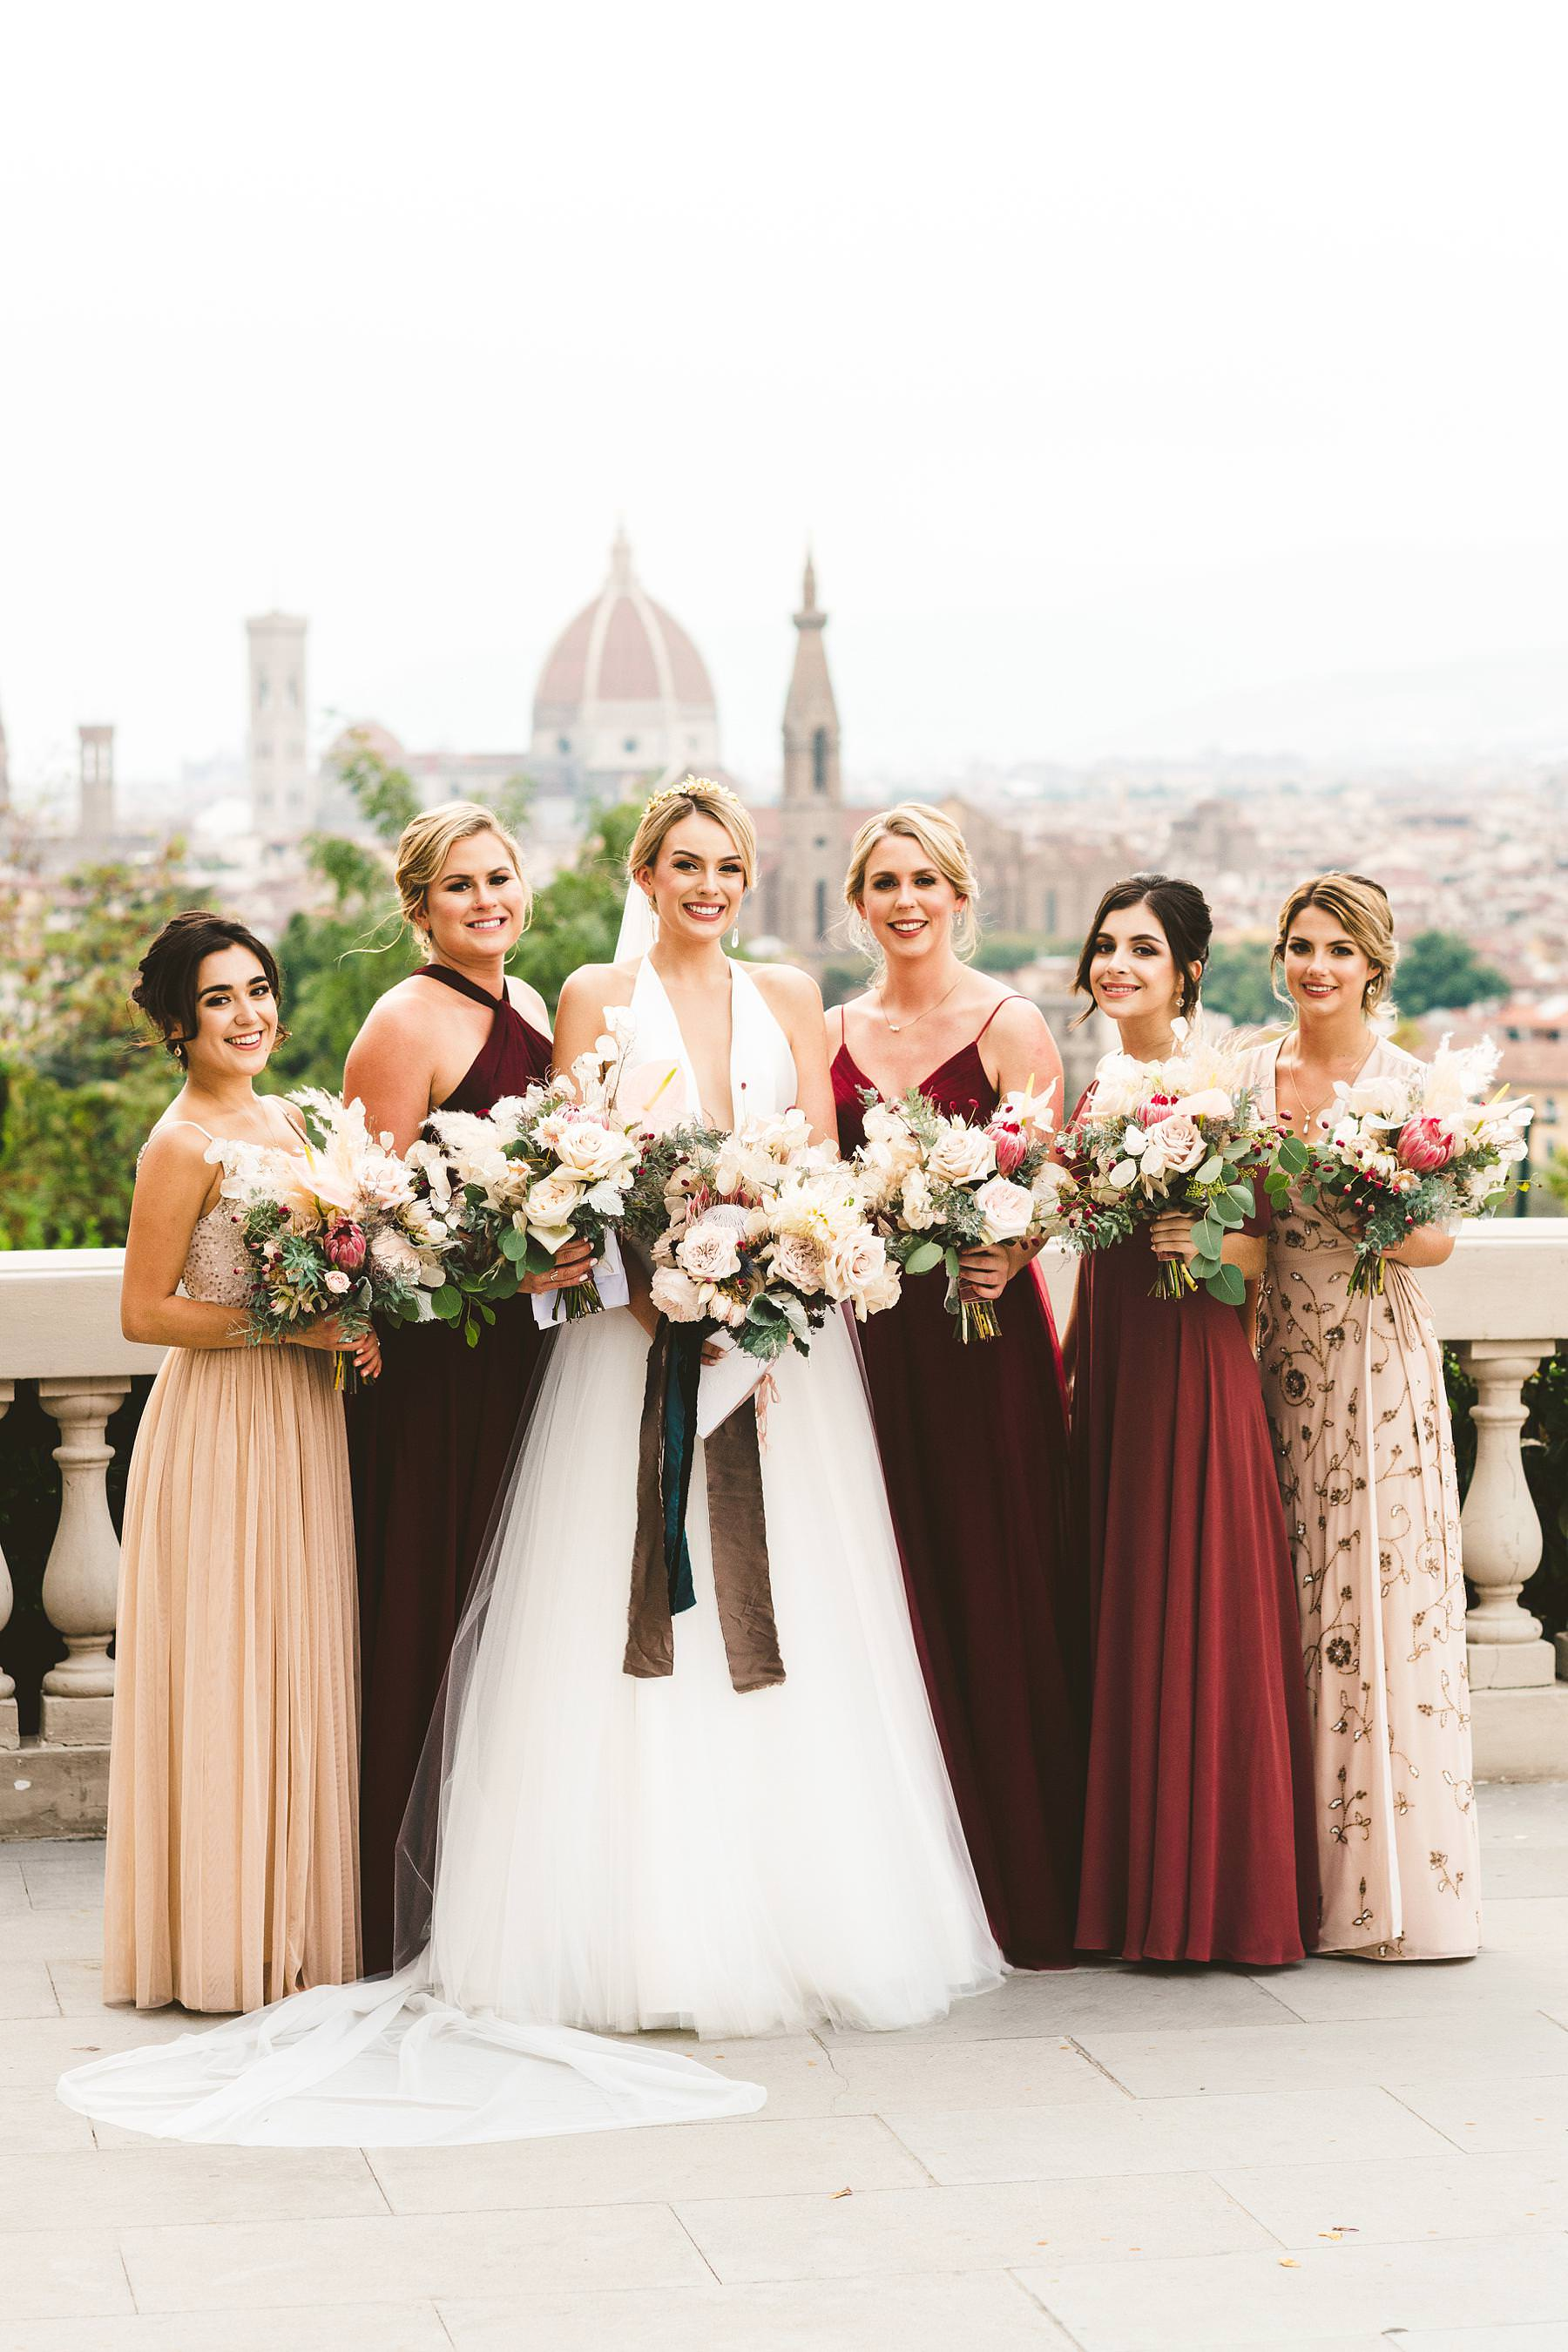 Luxury wedding with amazing view at Villa La Vedetta in Florence. Bride Christina with bridesmaids